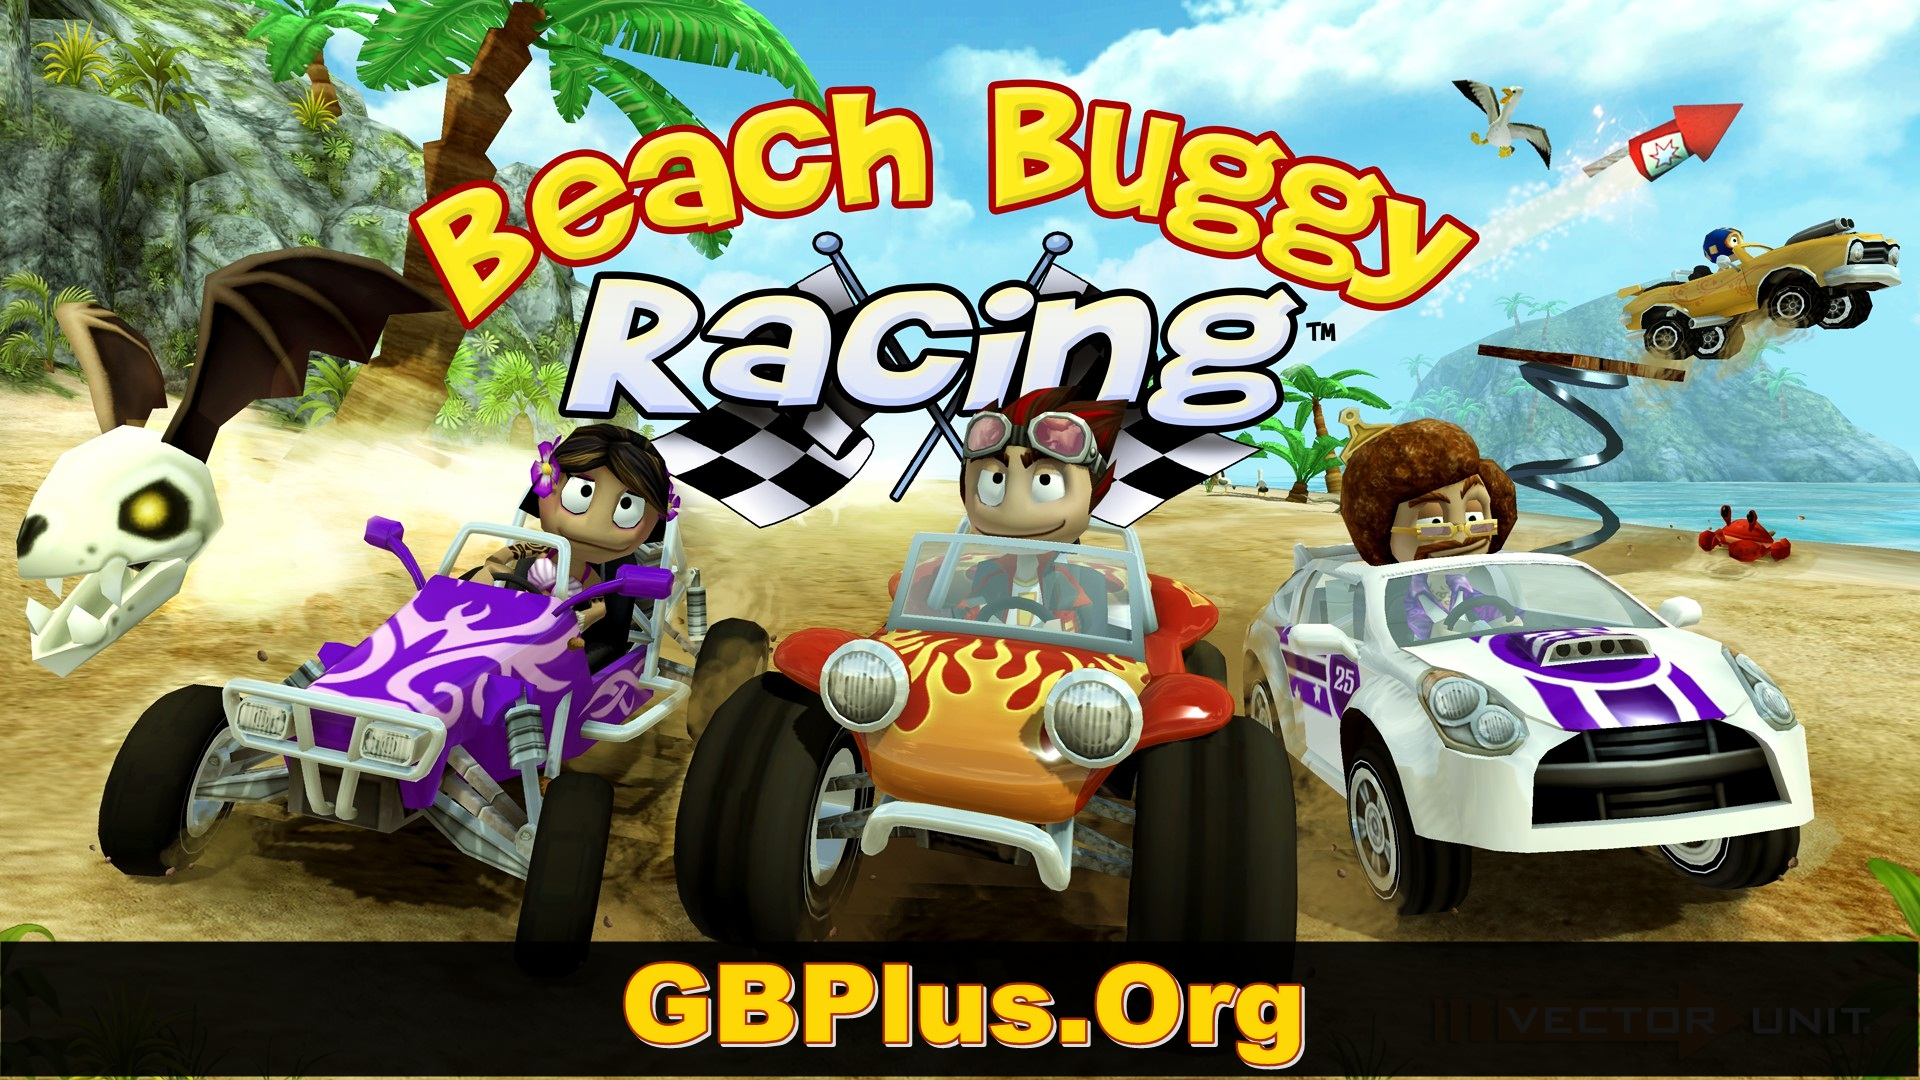 Beach Buggy Racing Mod Apk 1.2.25 (MOD, Unlimited Money) For android